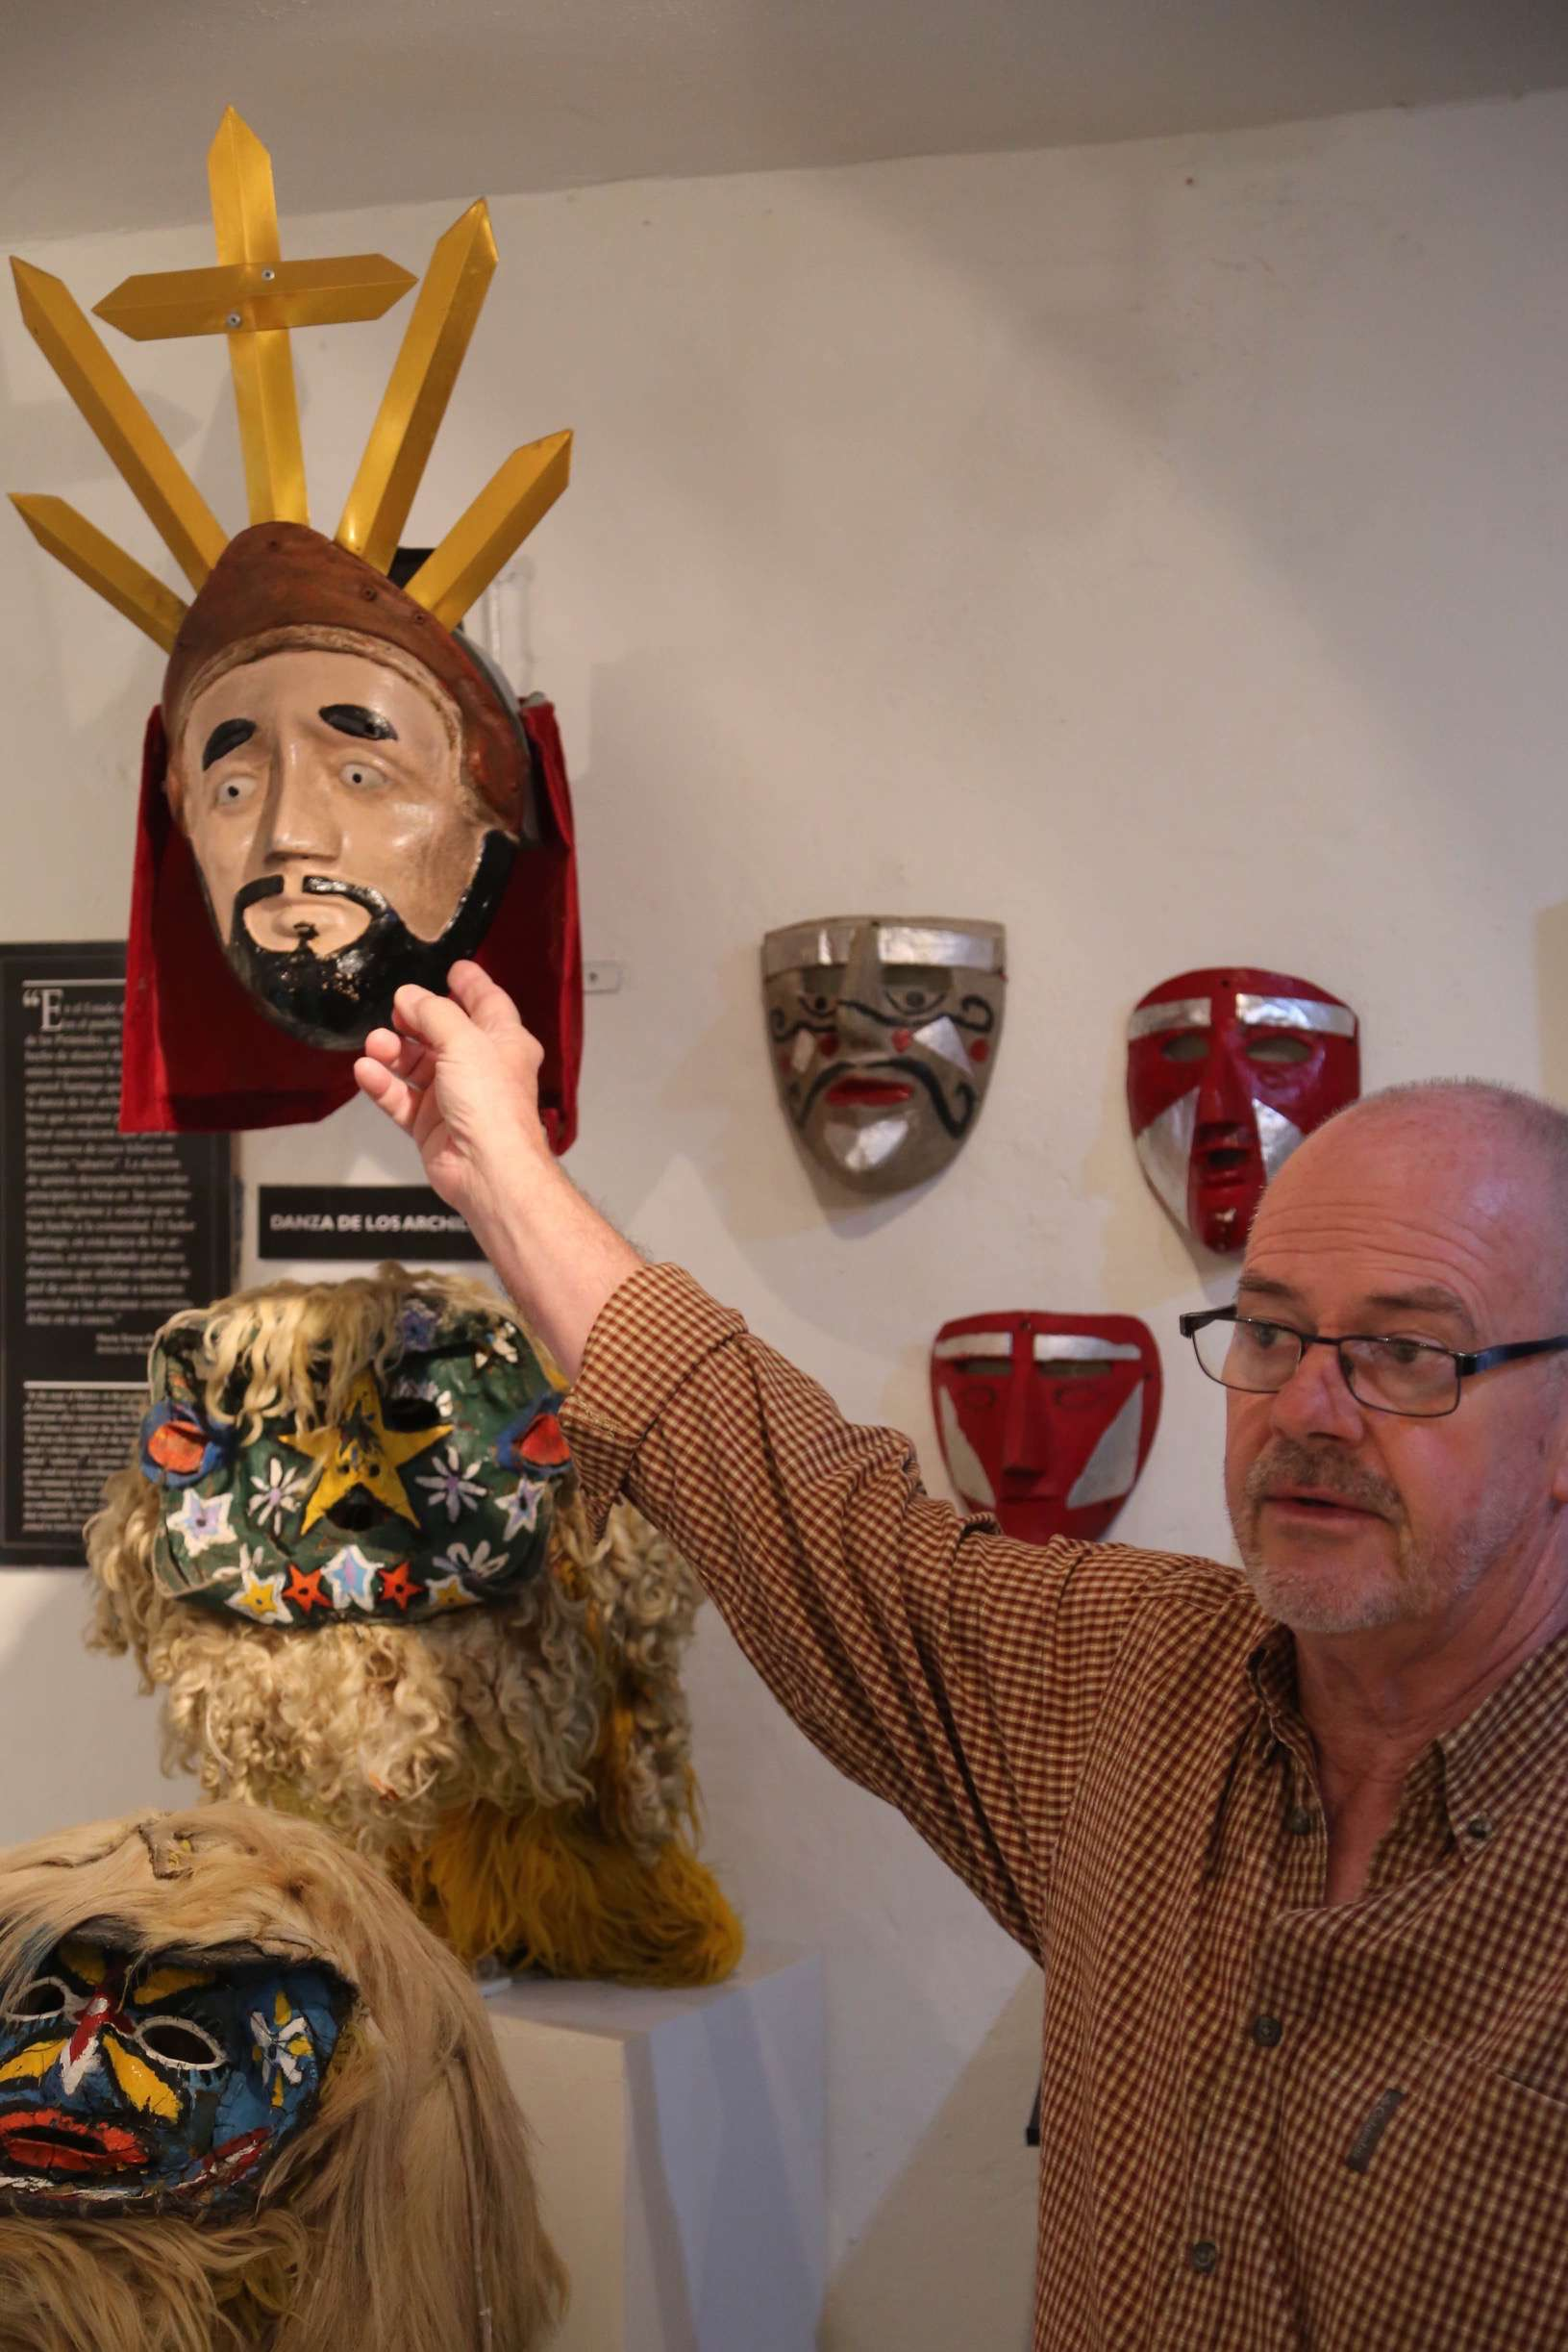 Bill LaVasseur has amassed and curated an incredible collection of ceremonial masks representing many aspects of Mexican culture.